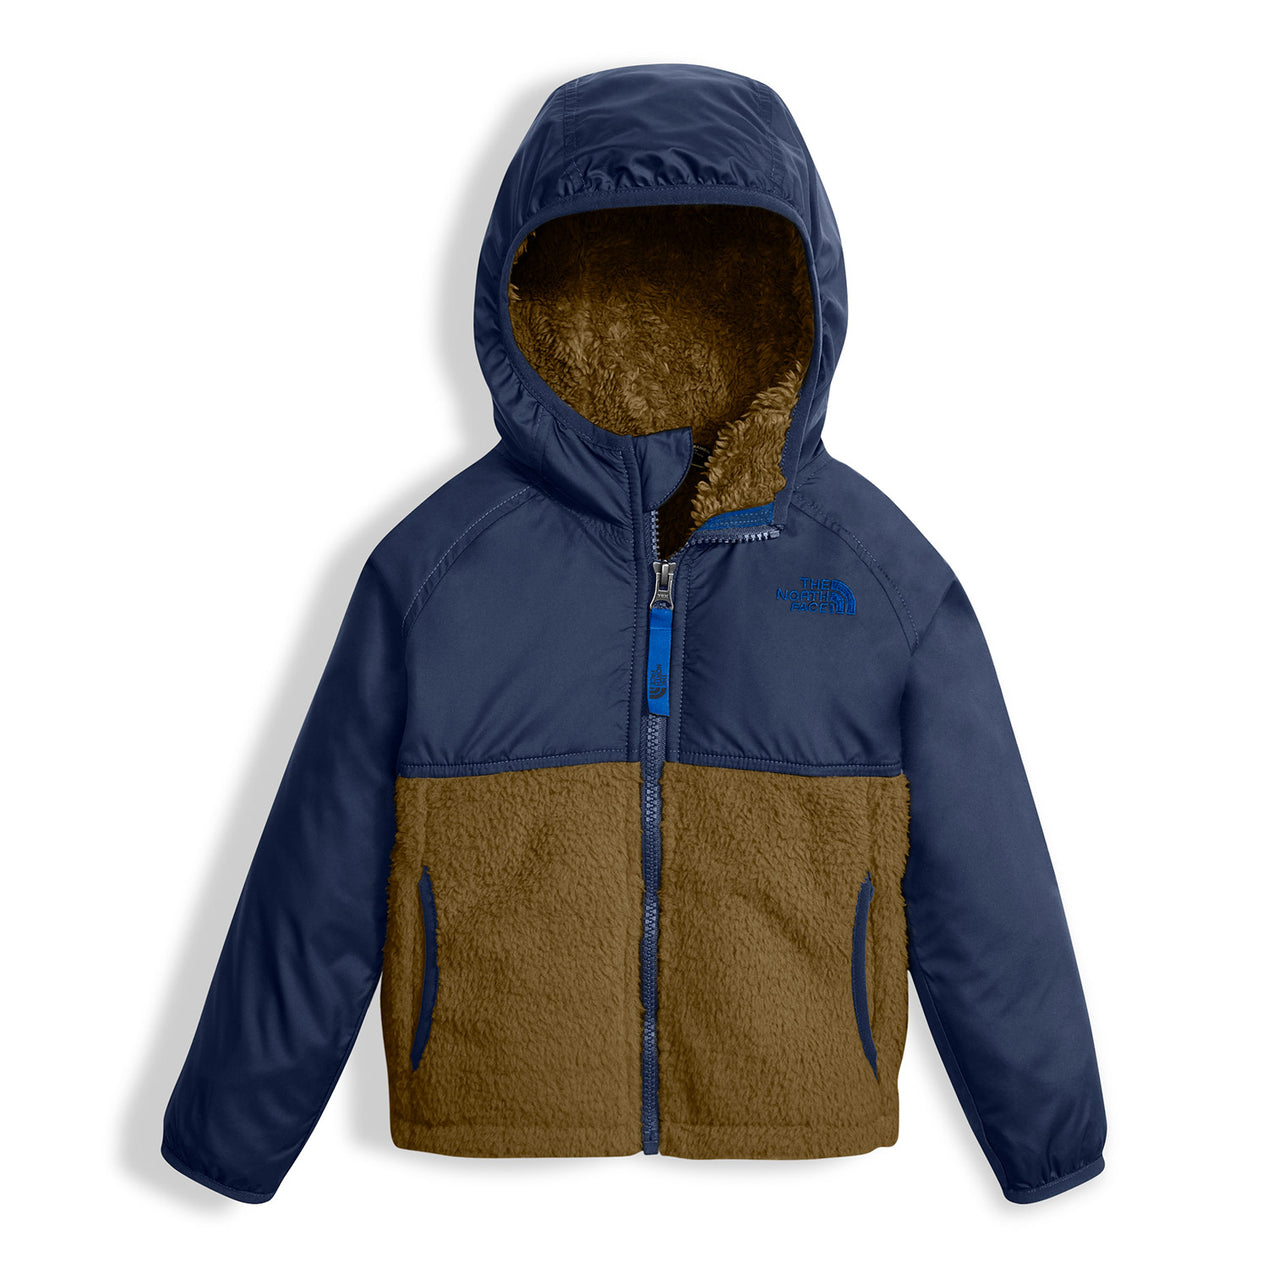 d3f0a00a5518 The North Face Toddler Boy s Sherparazo Hoodie